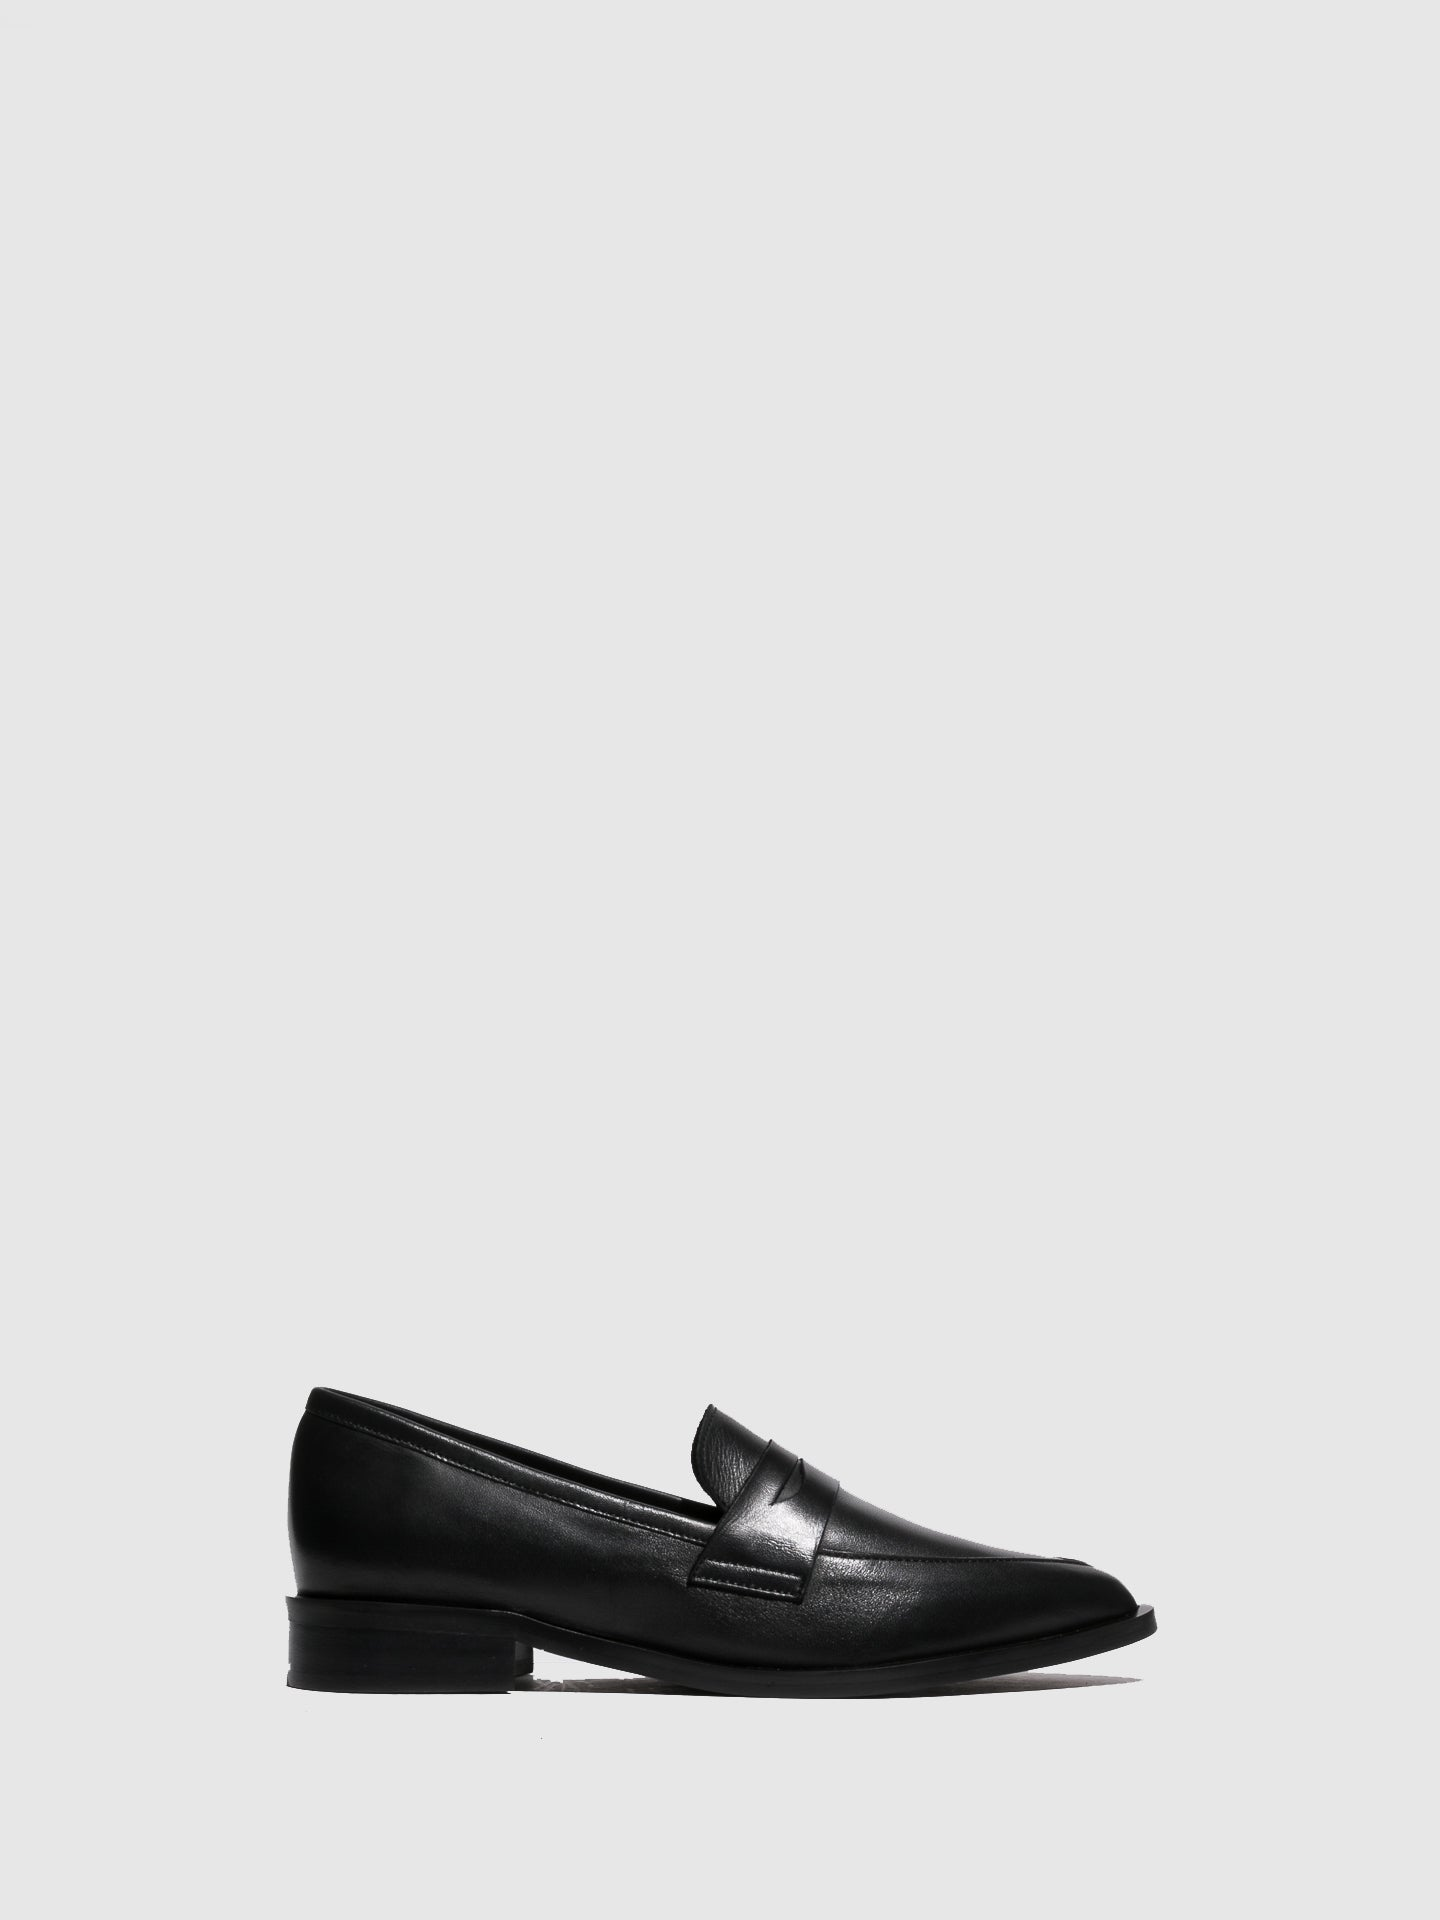 Foreva Black Flat Shoes